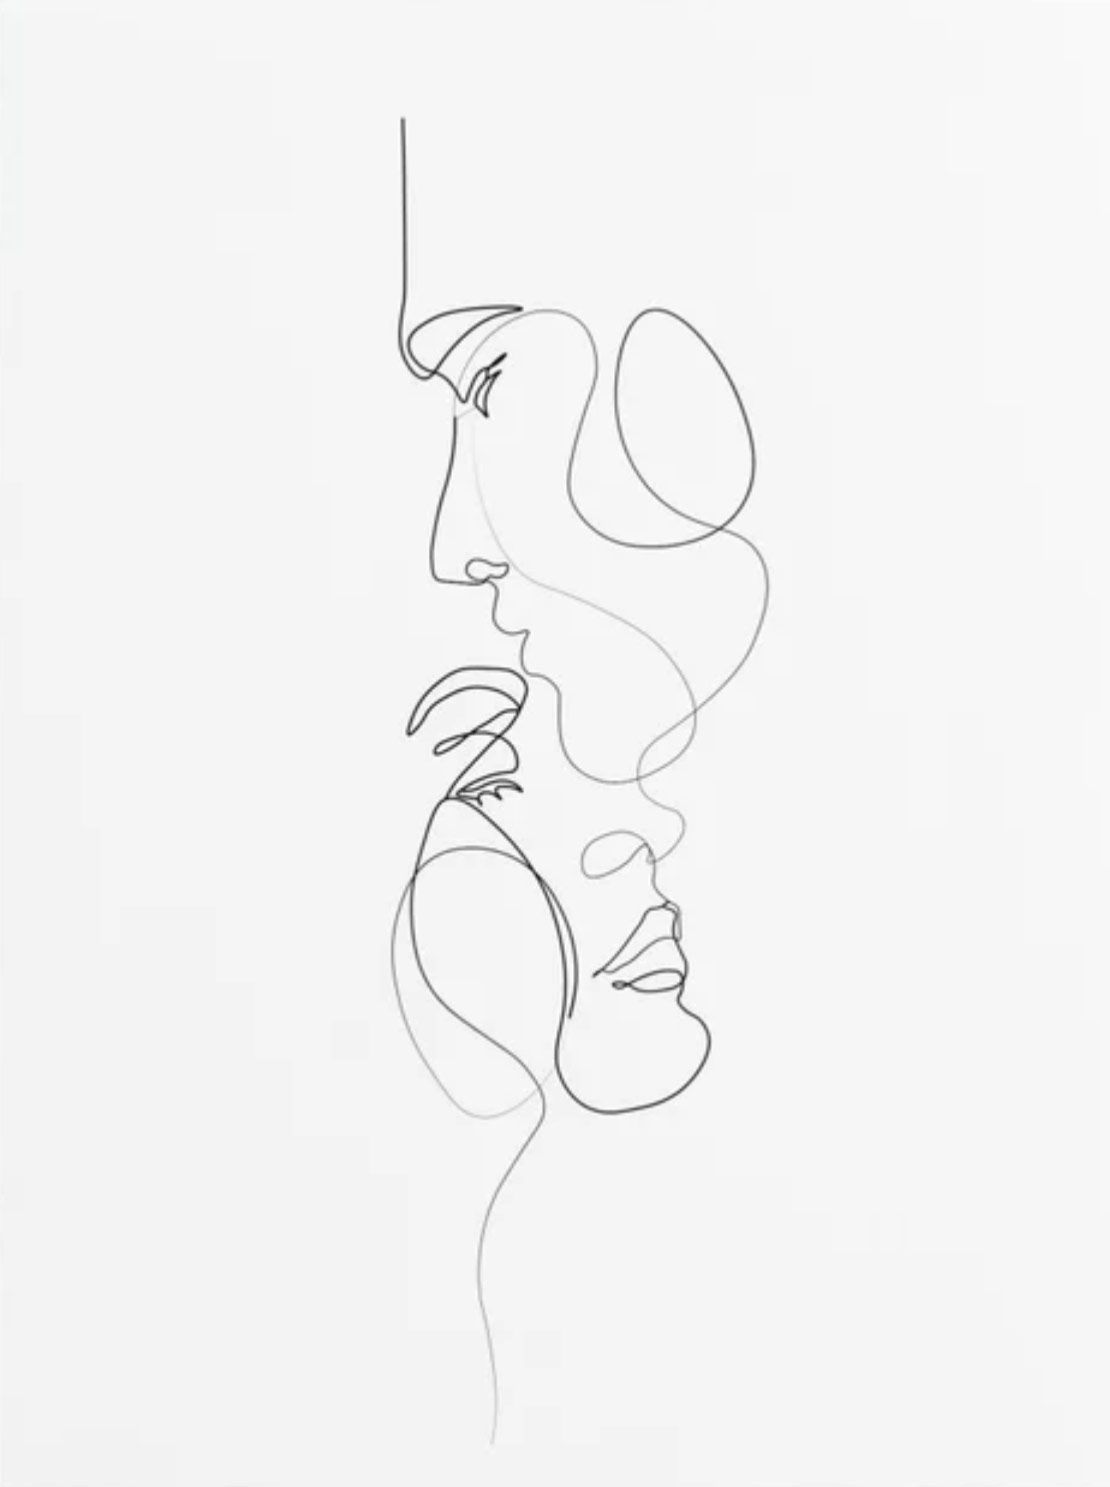 Lovers, a minimalistic line drawing art print #abstraktezeichnungen A simple lin…